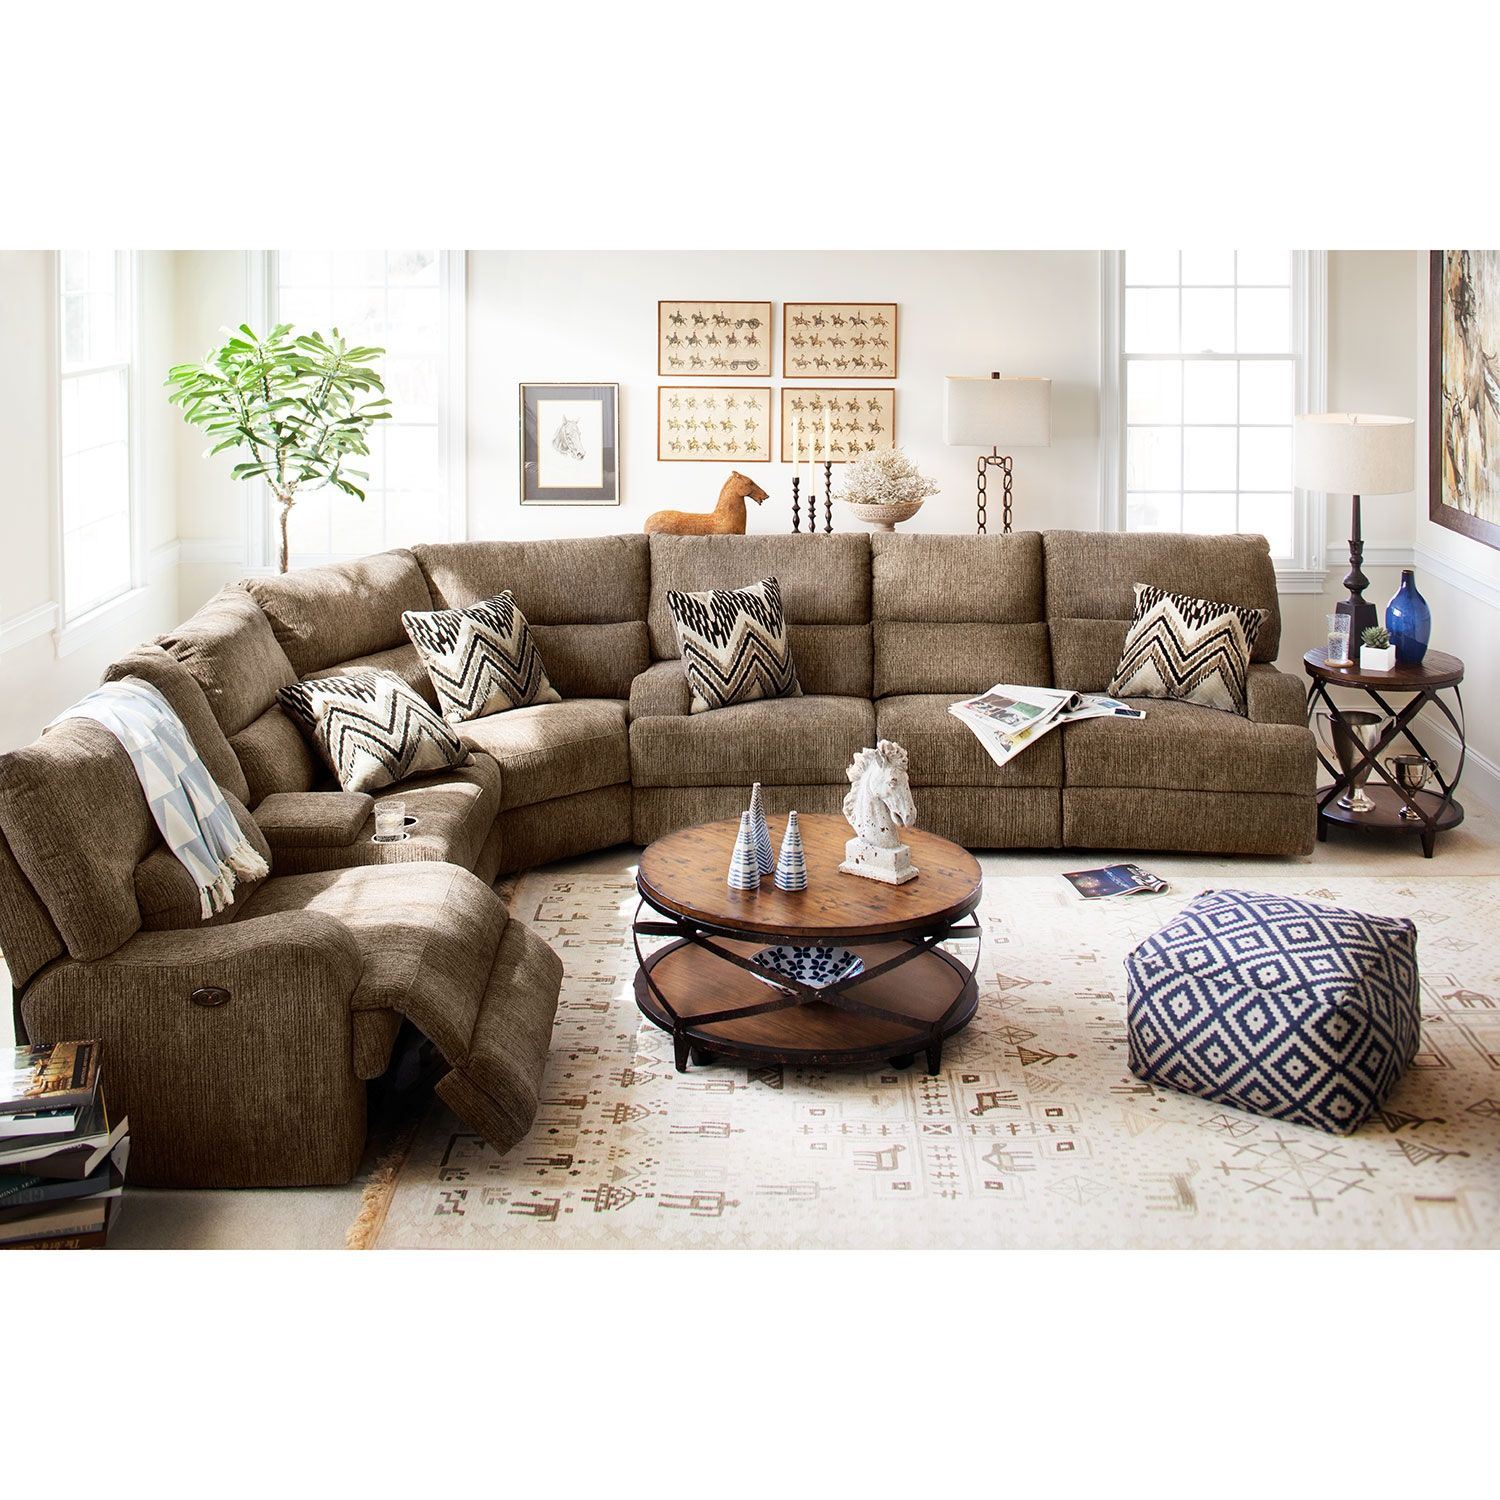 American Signature Furniture Com: Sundance 3 Pc. Power Reclining Sectional